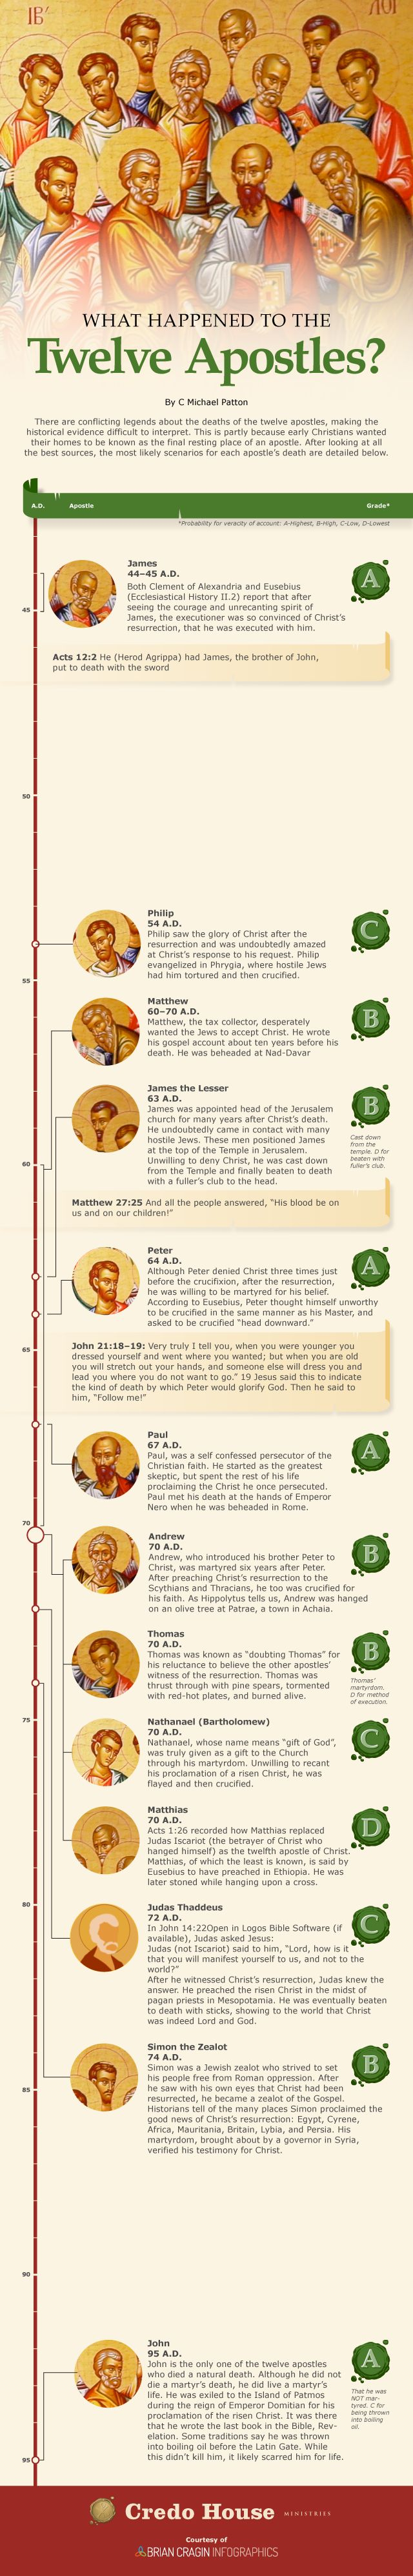 How The 12 Apostles Died [Infographic]